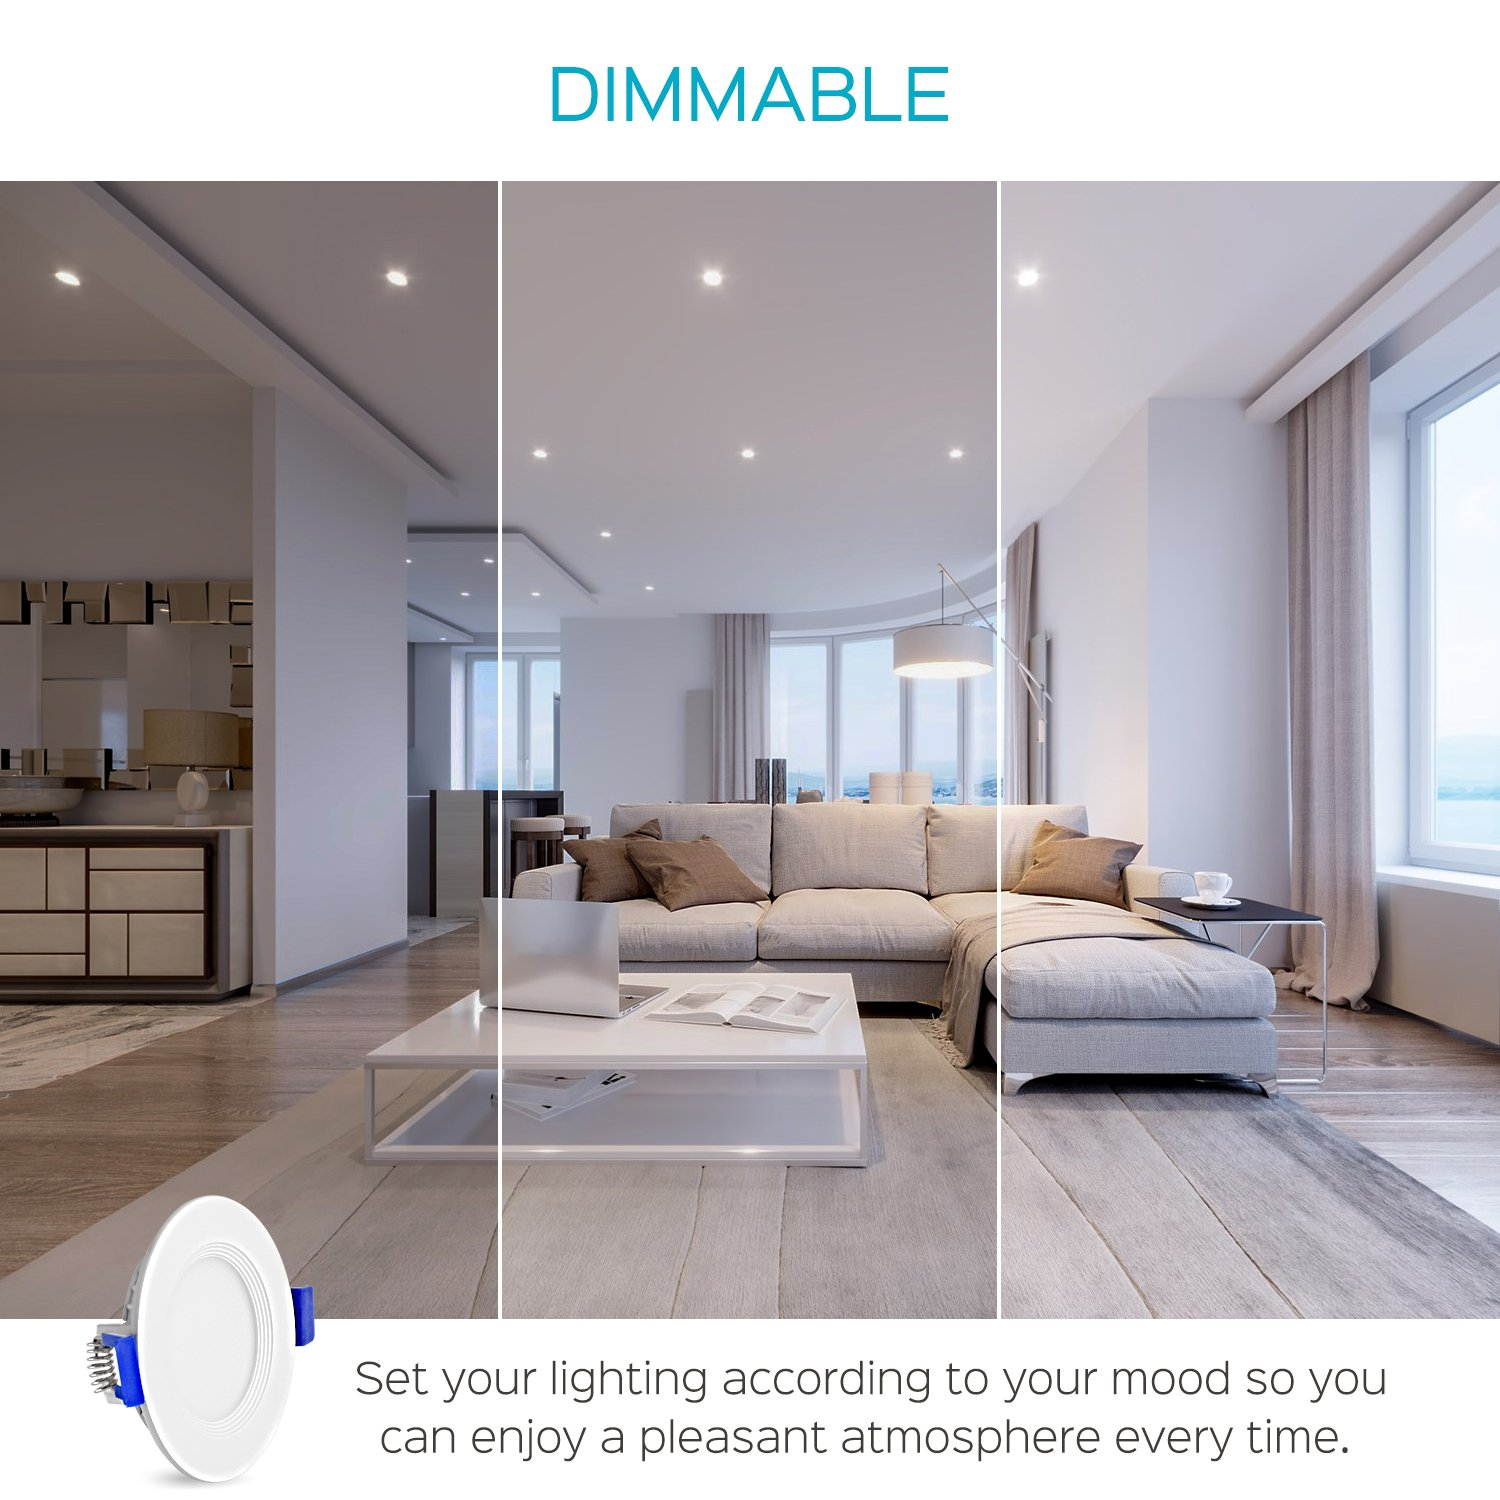 3 Inch Ultra Thin LED Recessed Ceiling Light with Junction Box, Luxrite, 7W, 5000K (Bright White), 450 Lumens, Dimmable, Low Profile Recessed Downlight, ETL & IC Rated (4 Pack) by Luxrite (Image #6)